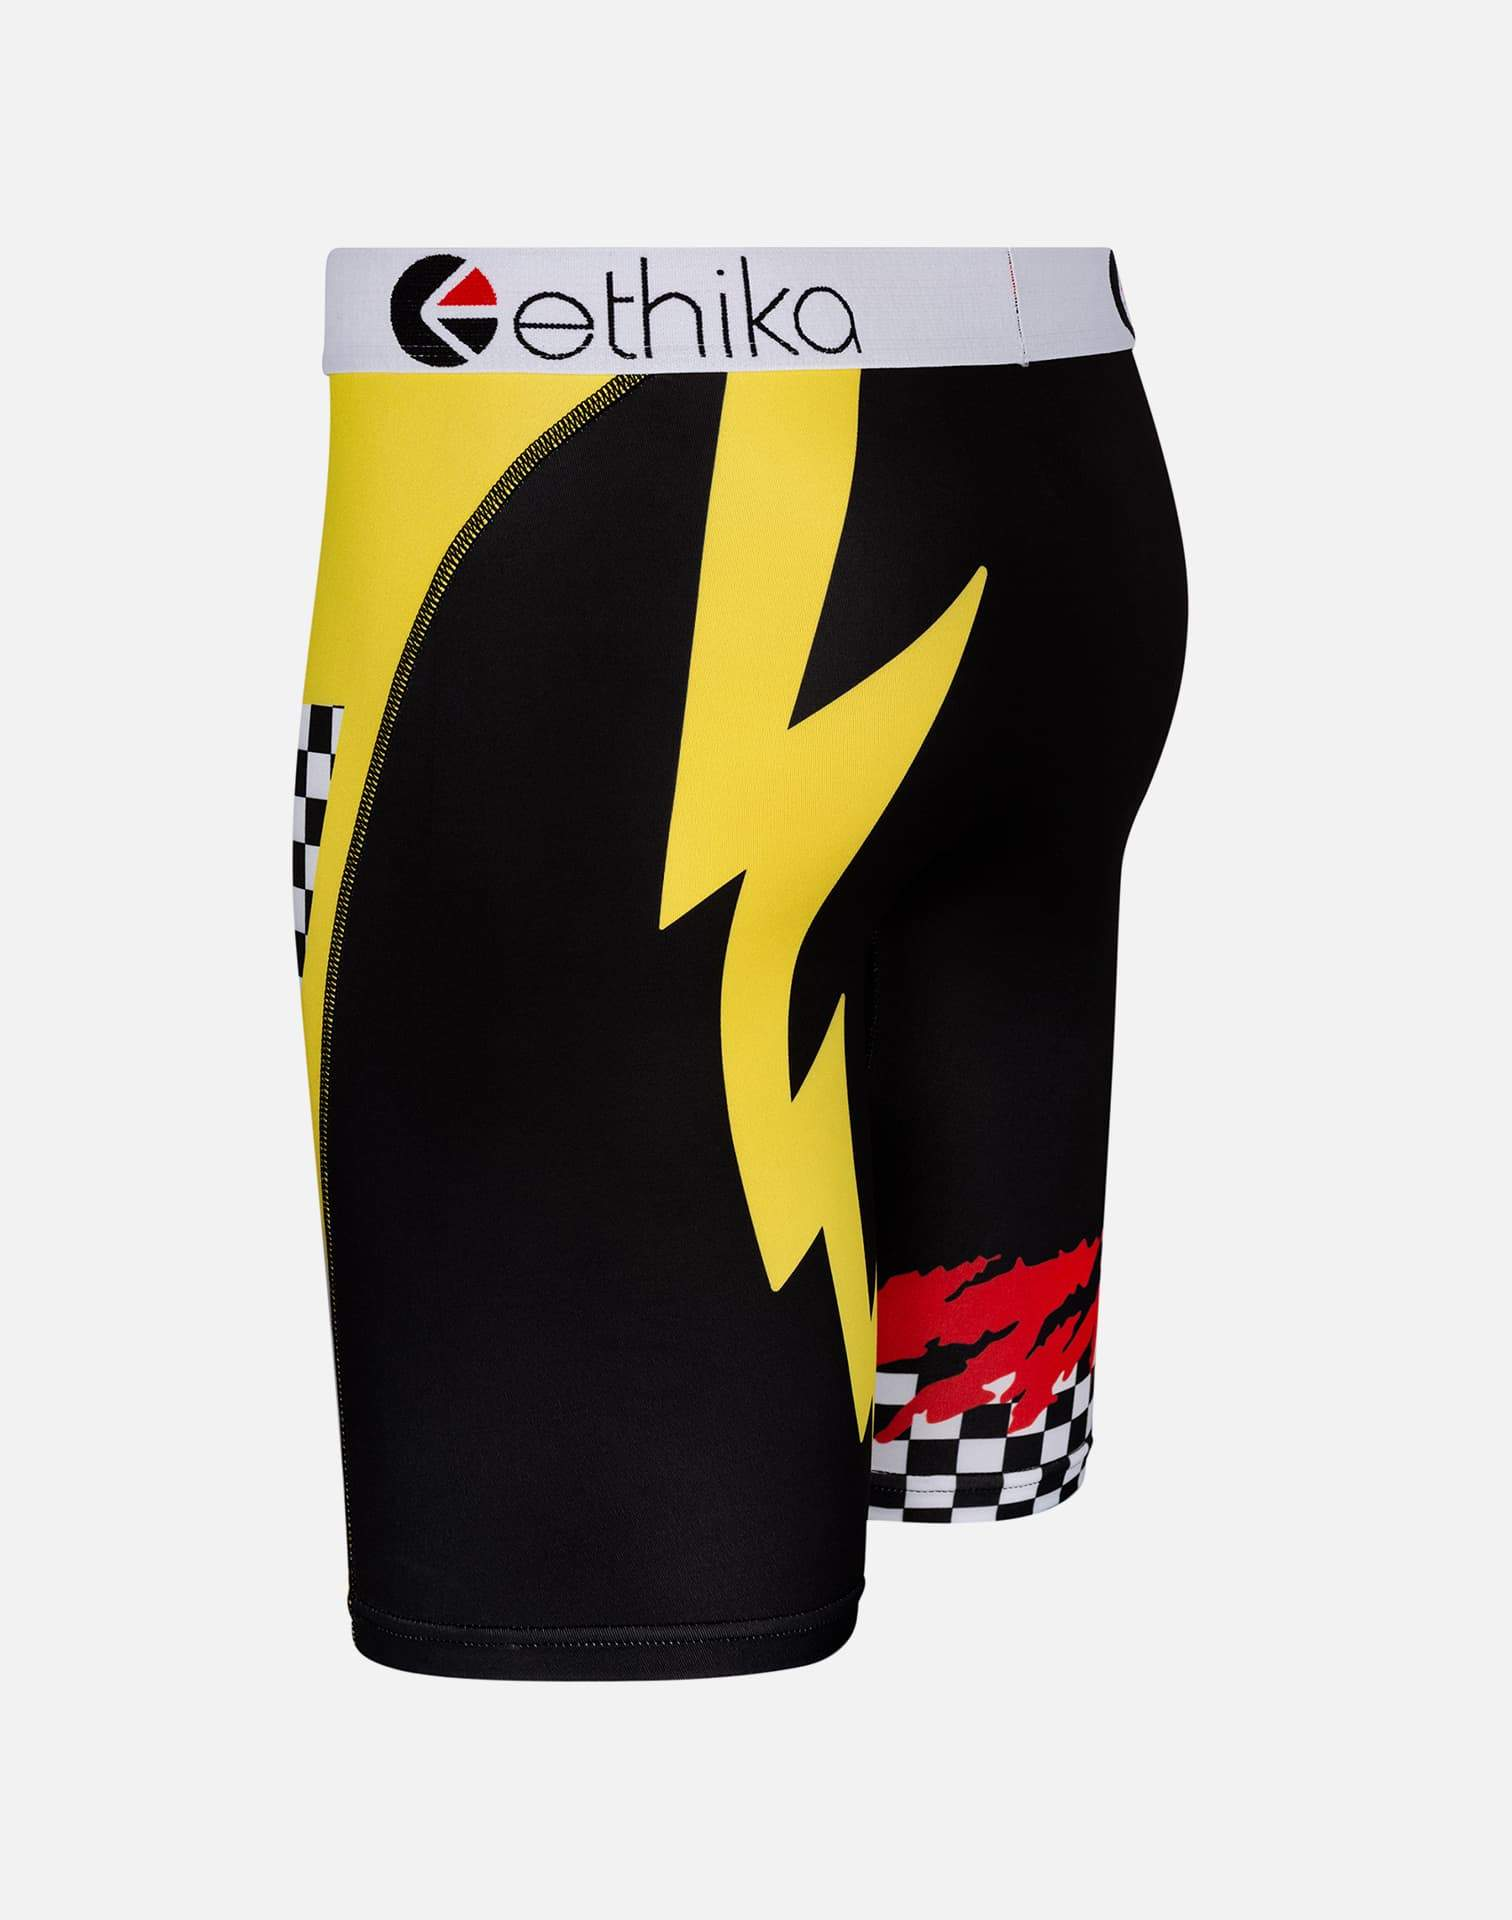 Ethika Men's First to Finish Boxer Briefs